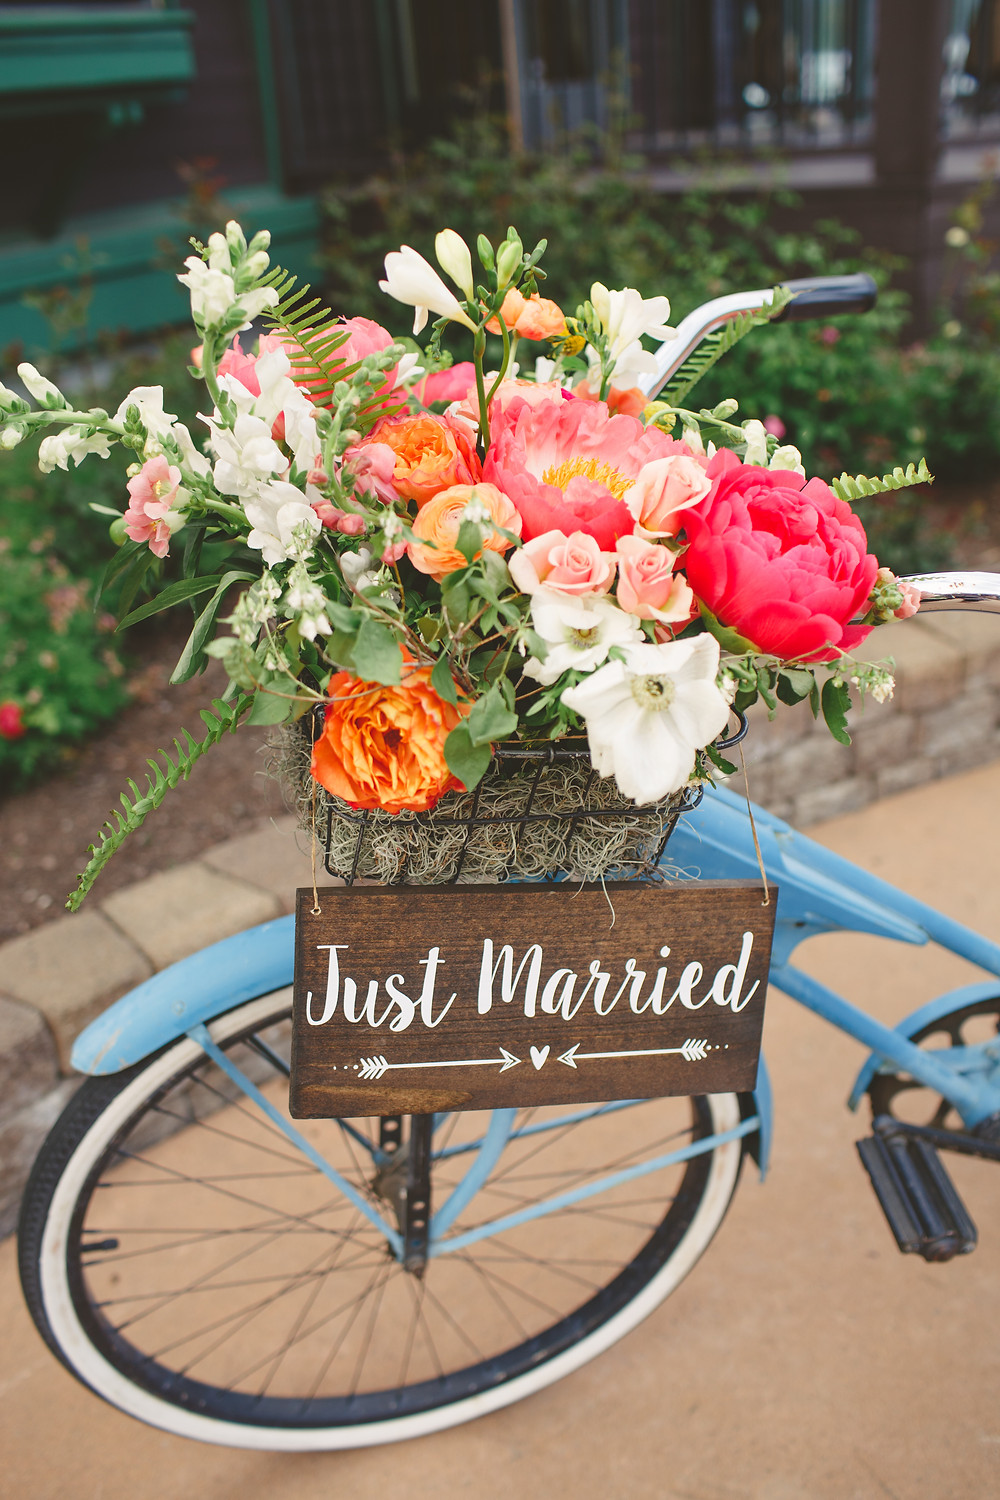 bike_with_just_married_sign